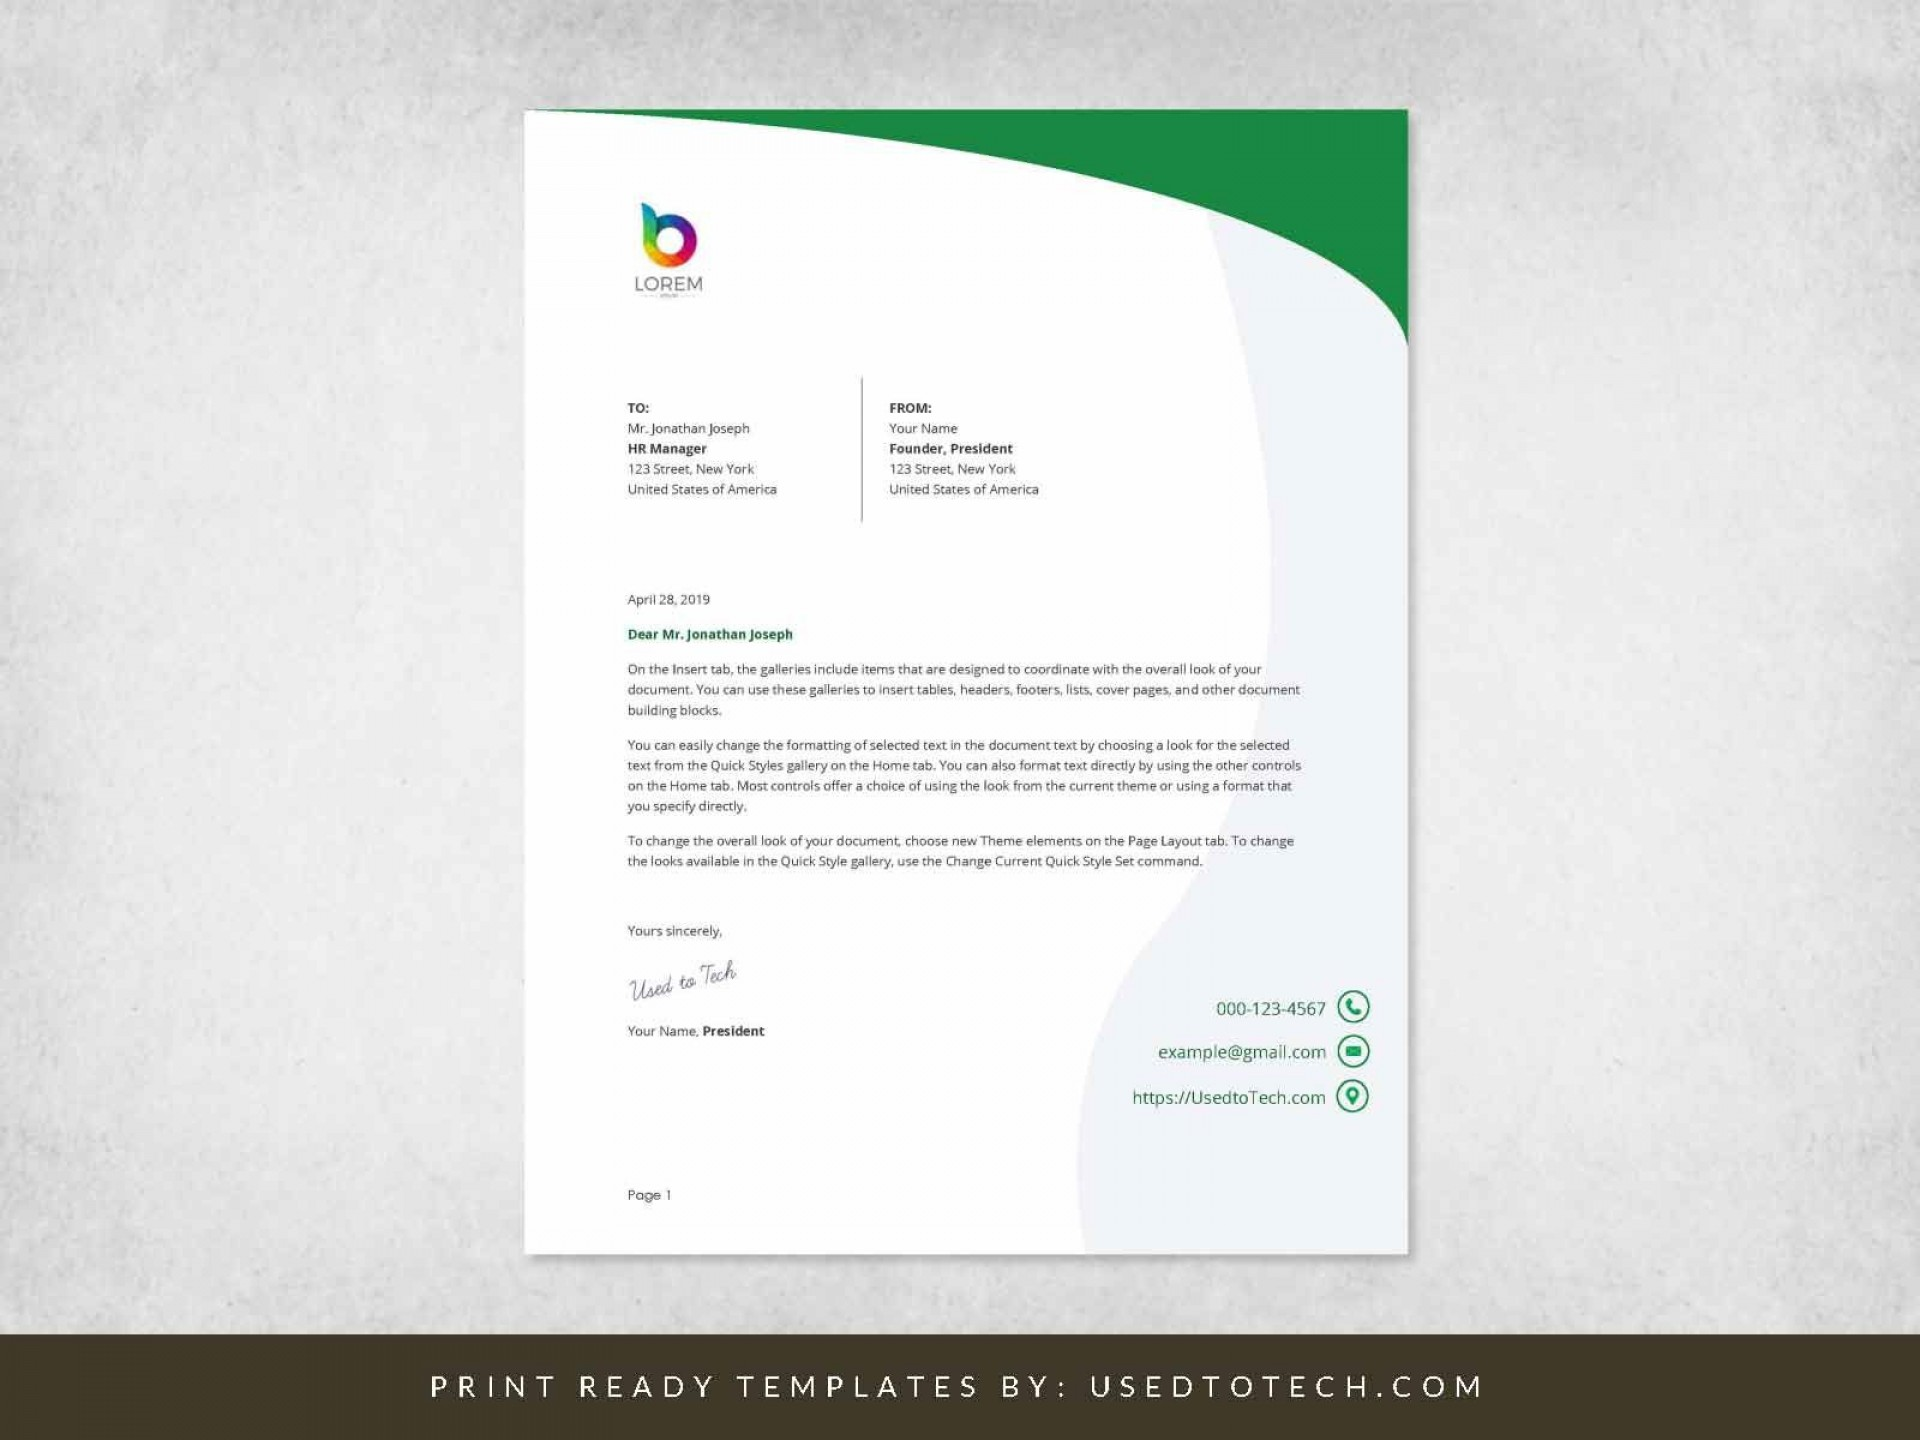 000 Staggering Letterhead Sample In Word Format Free Download Highest Quality  Design Template Psd1920